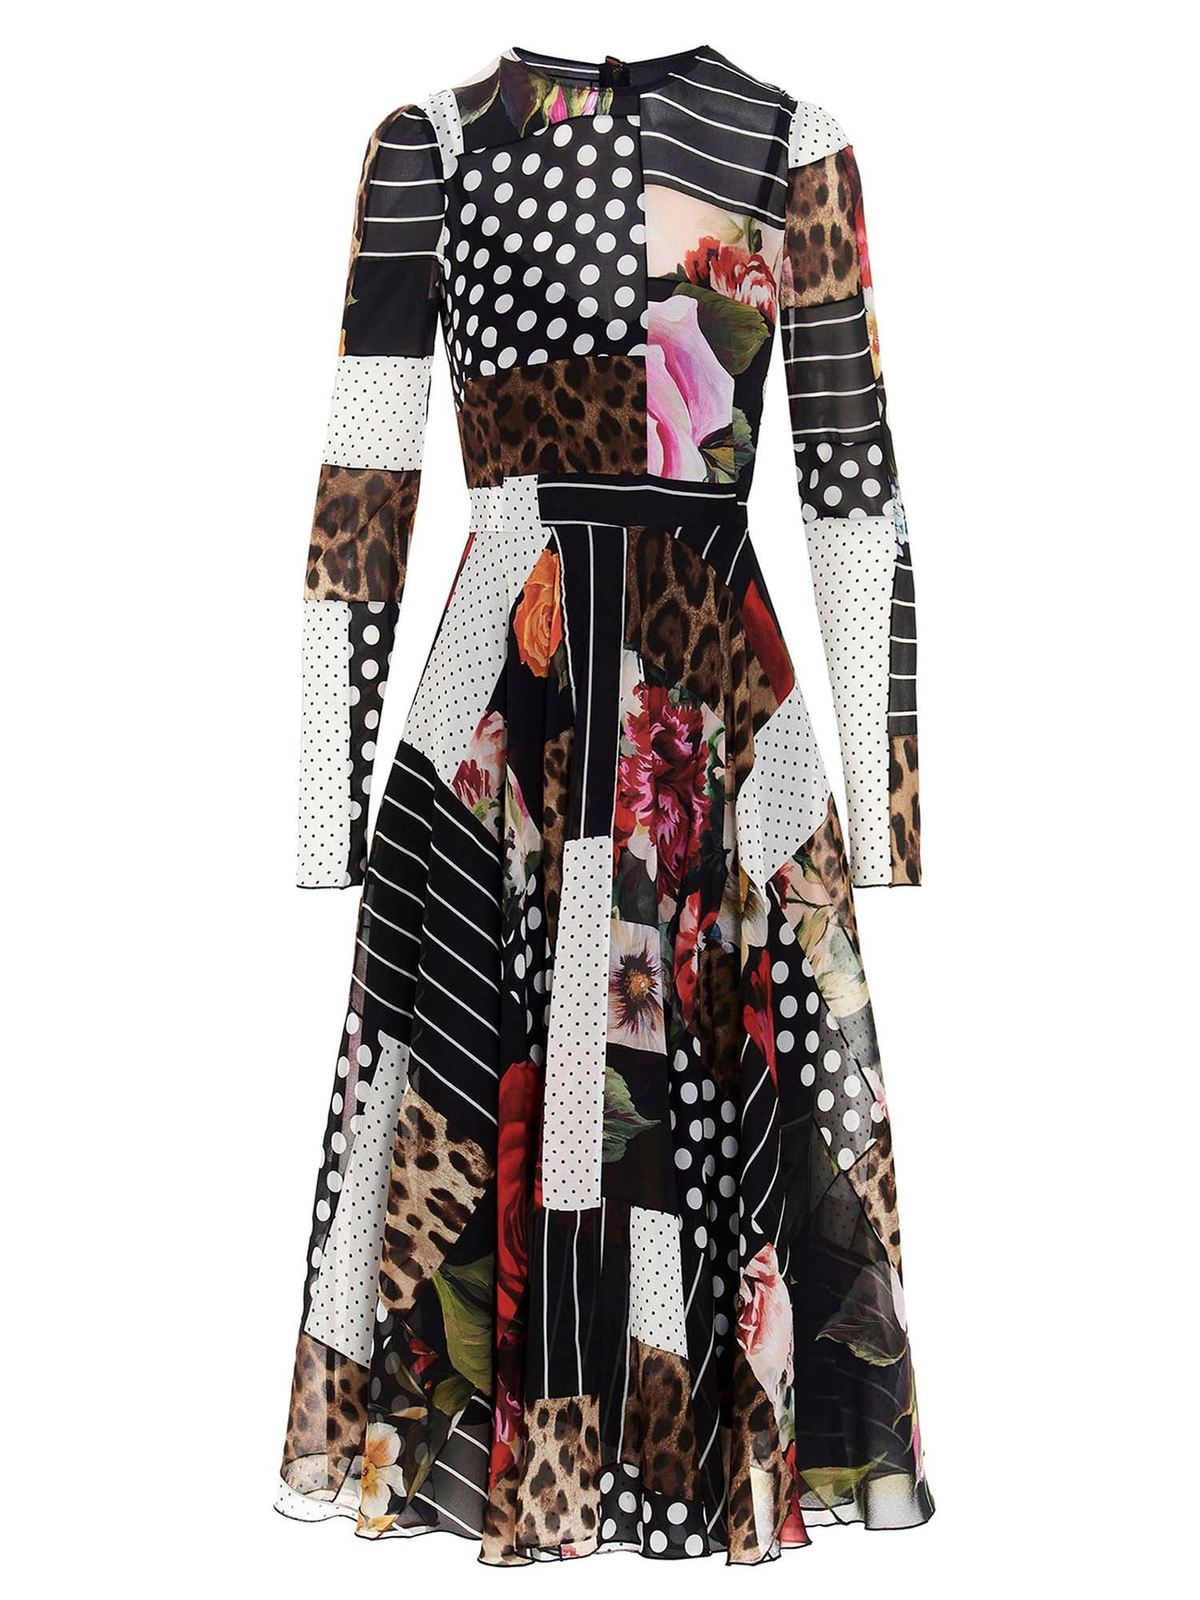 Dolce & Gabbana Downs PATCHWORK DRESS IN MULTICOLOR